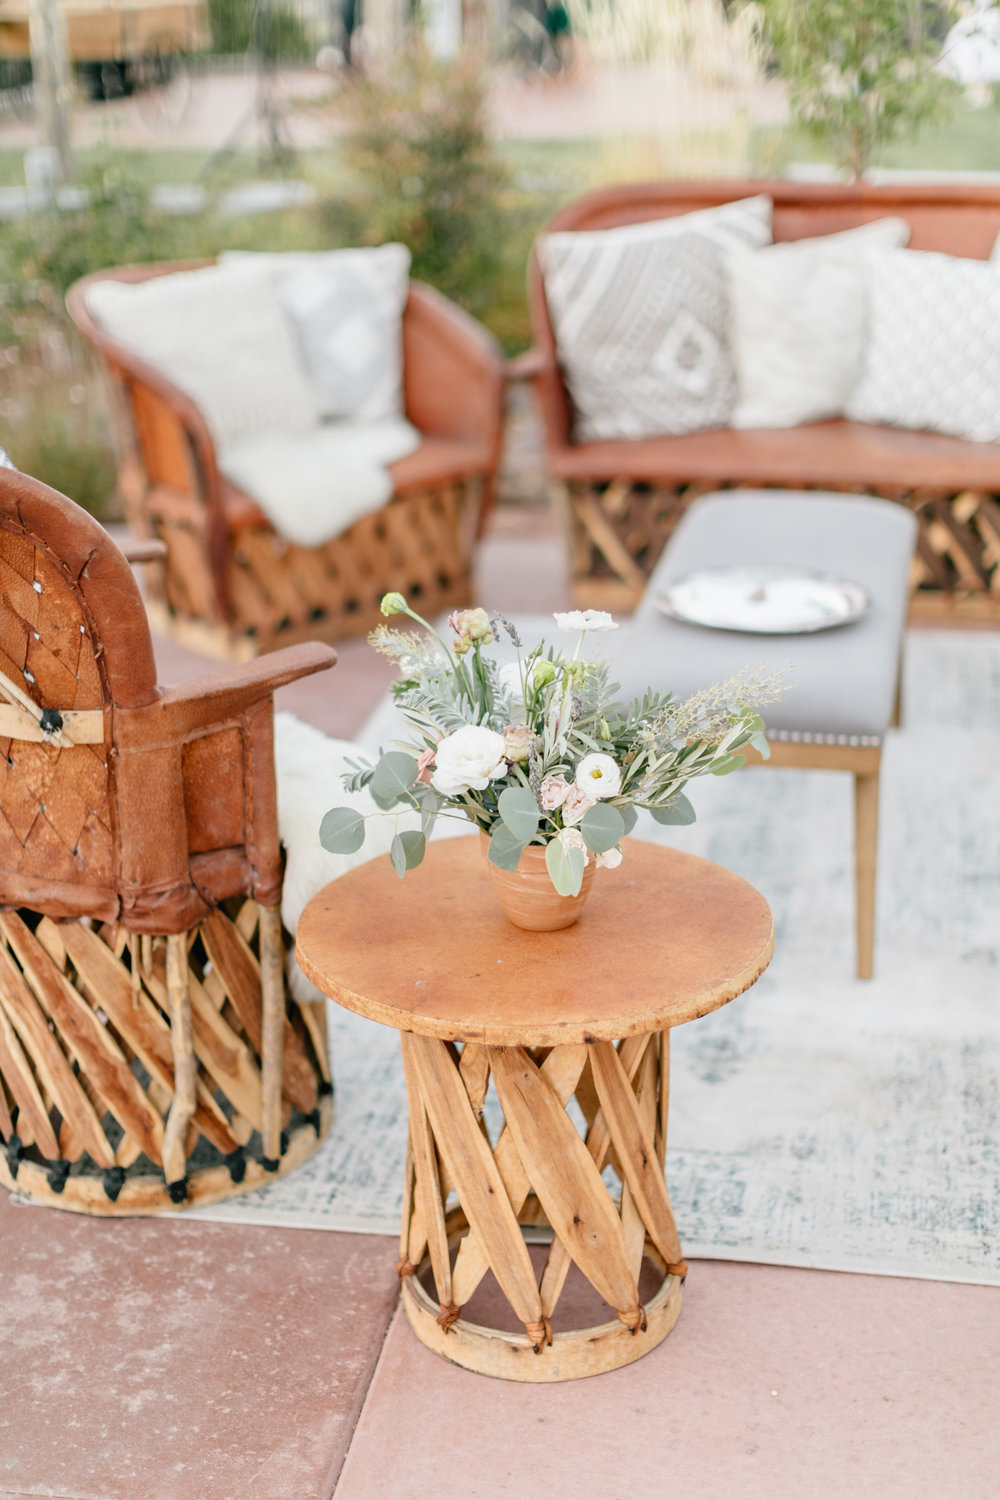 An Intimate Sedona Wedding Nestled in the Arizona Red Rocks  - Tremaine Ranch - AZ Arizona Wedding & Event, Vintage, Furniture, Tableware, & Specialty Rentals in Phoenix, Tucson, Flagstaff, Sedona, Tempe, Chandler, Mesa, Gilbert, Prescott, Payson 5184.jpg